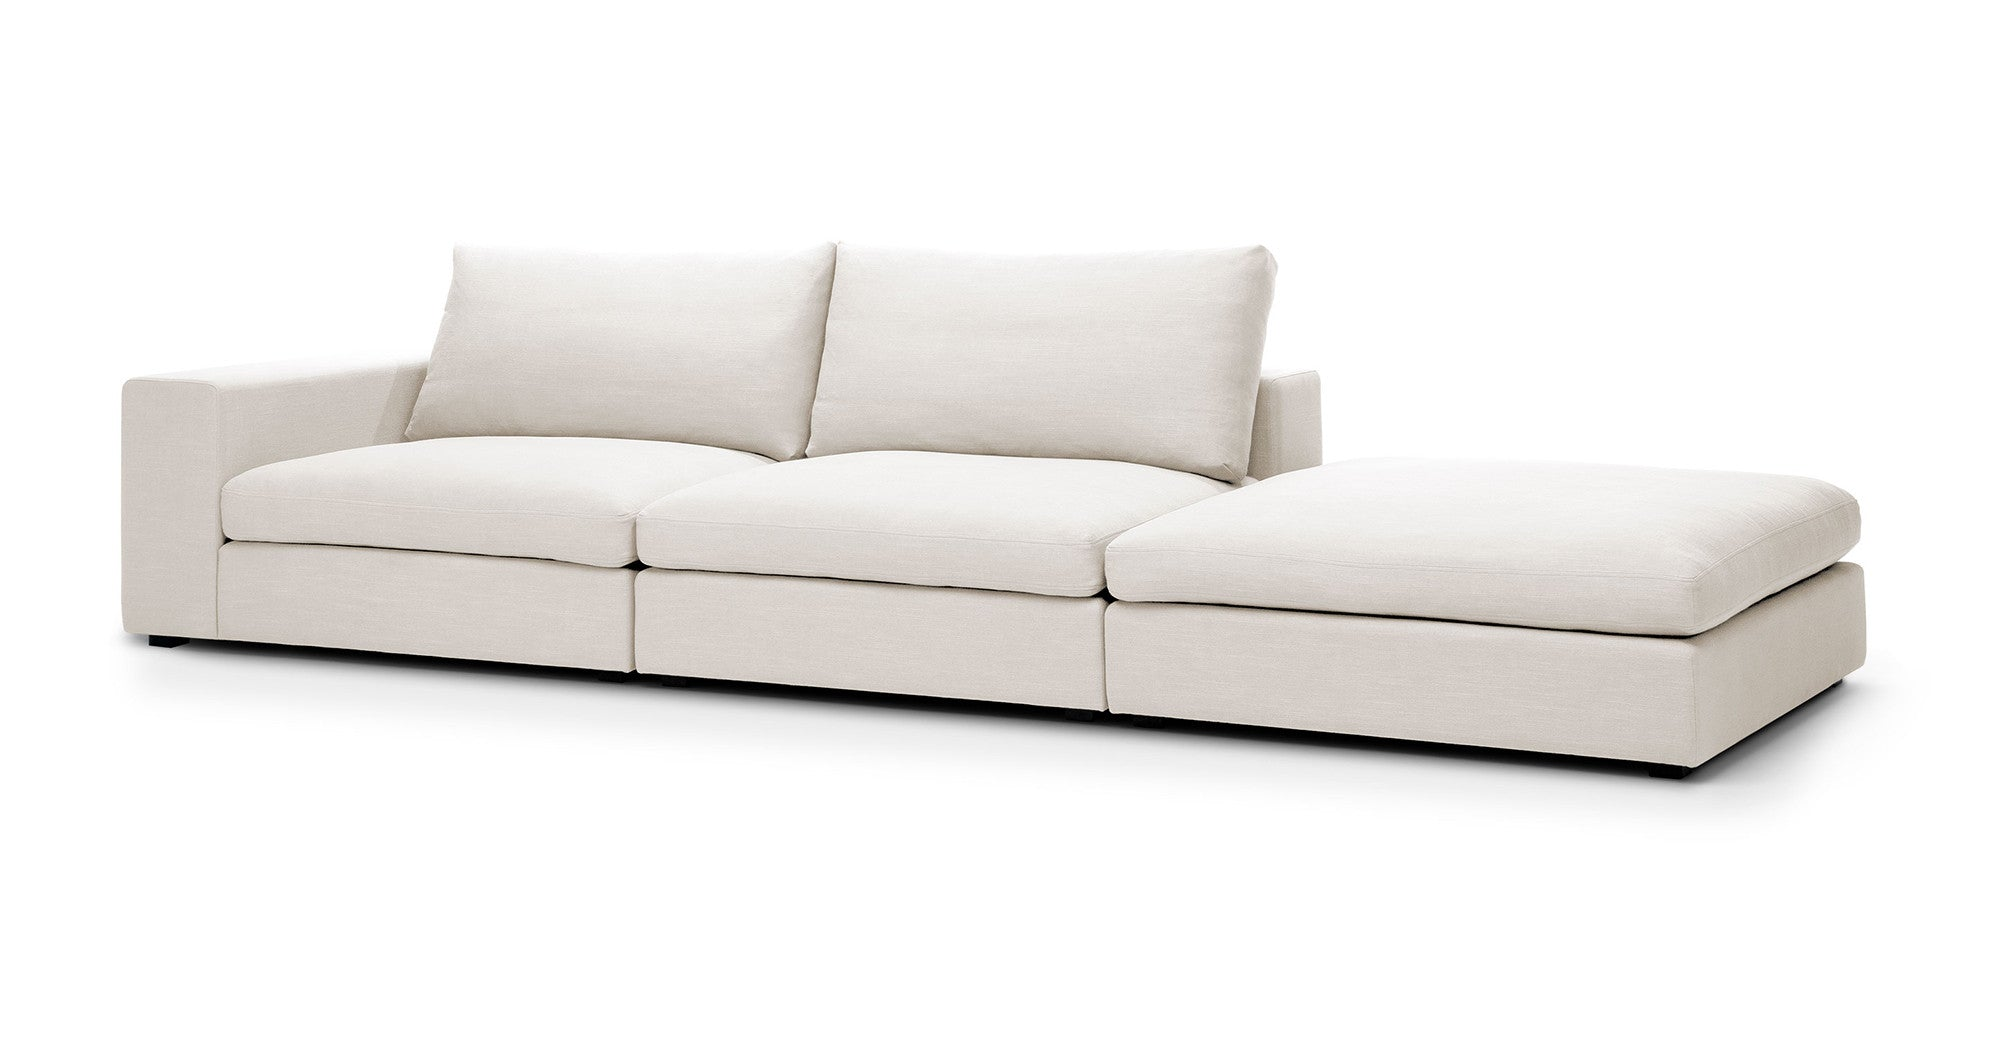 Sofa Sala Sala Sets On Furniture Wooden Sofa Sala Set Philippines  # Muebles Nasstrom